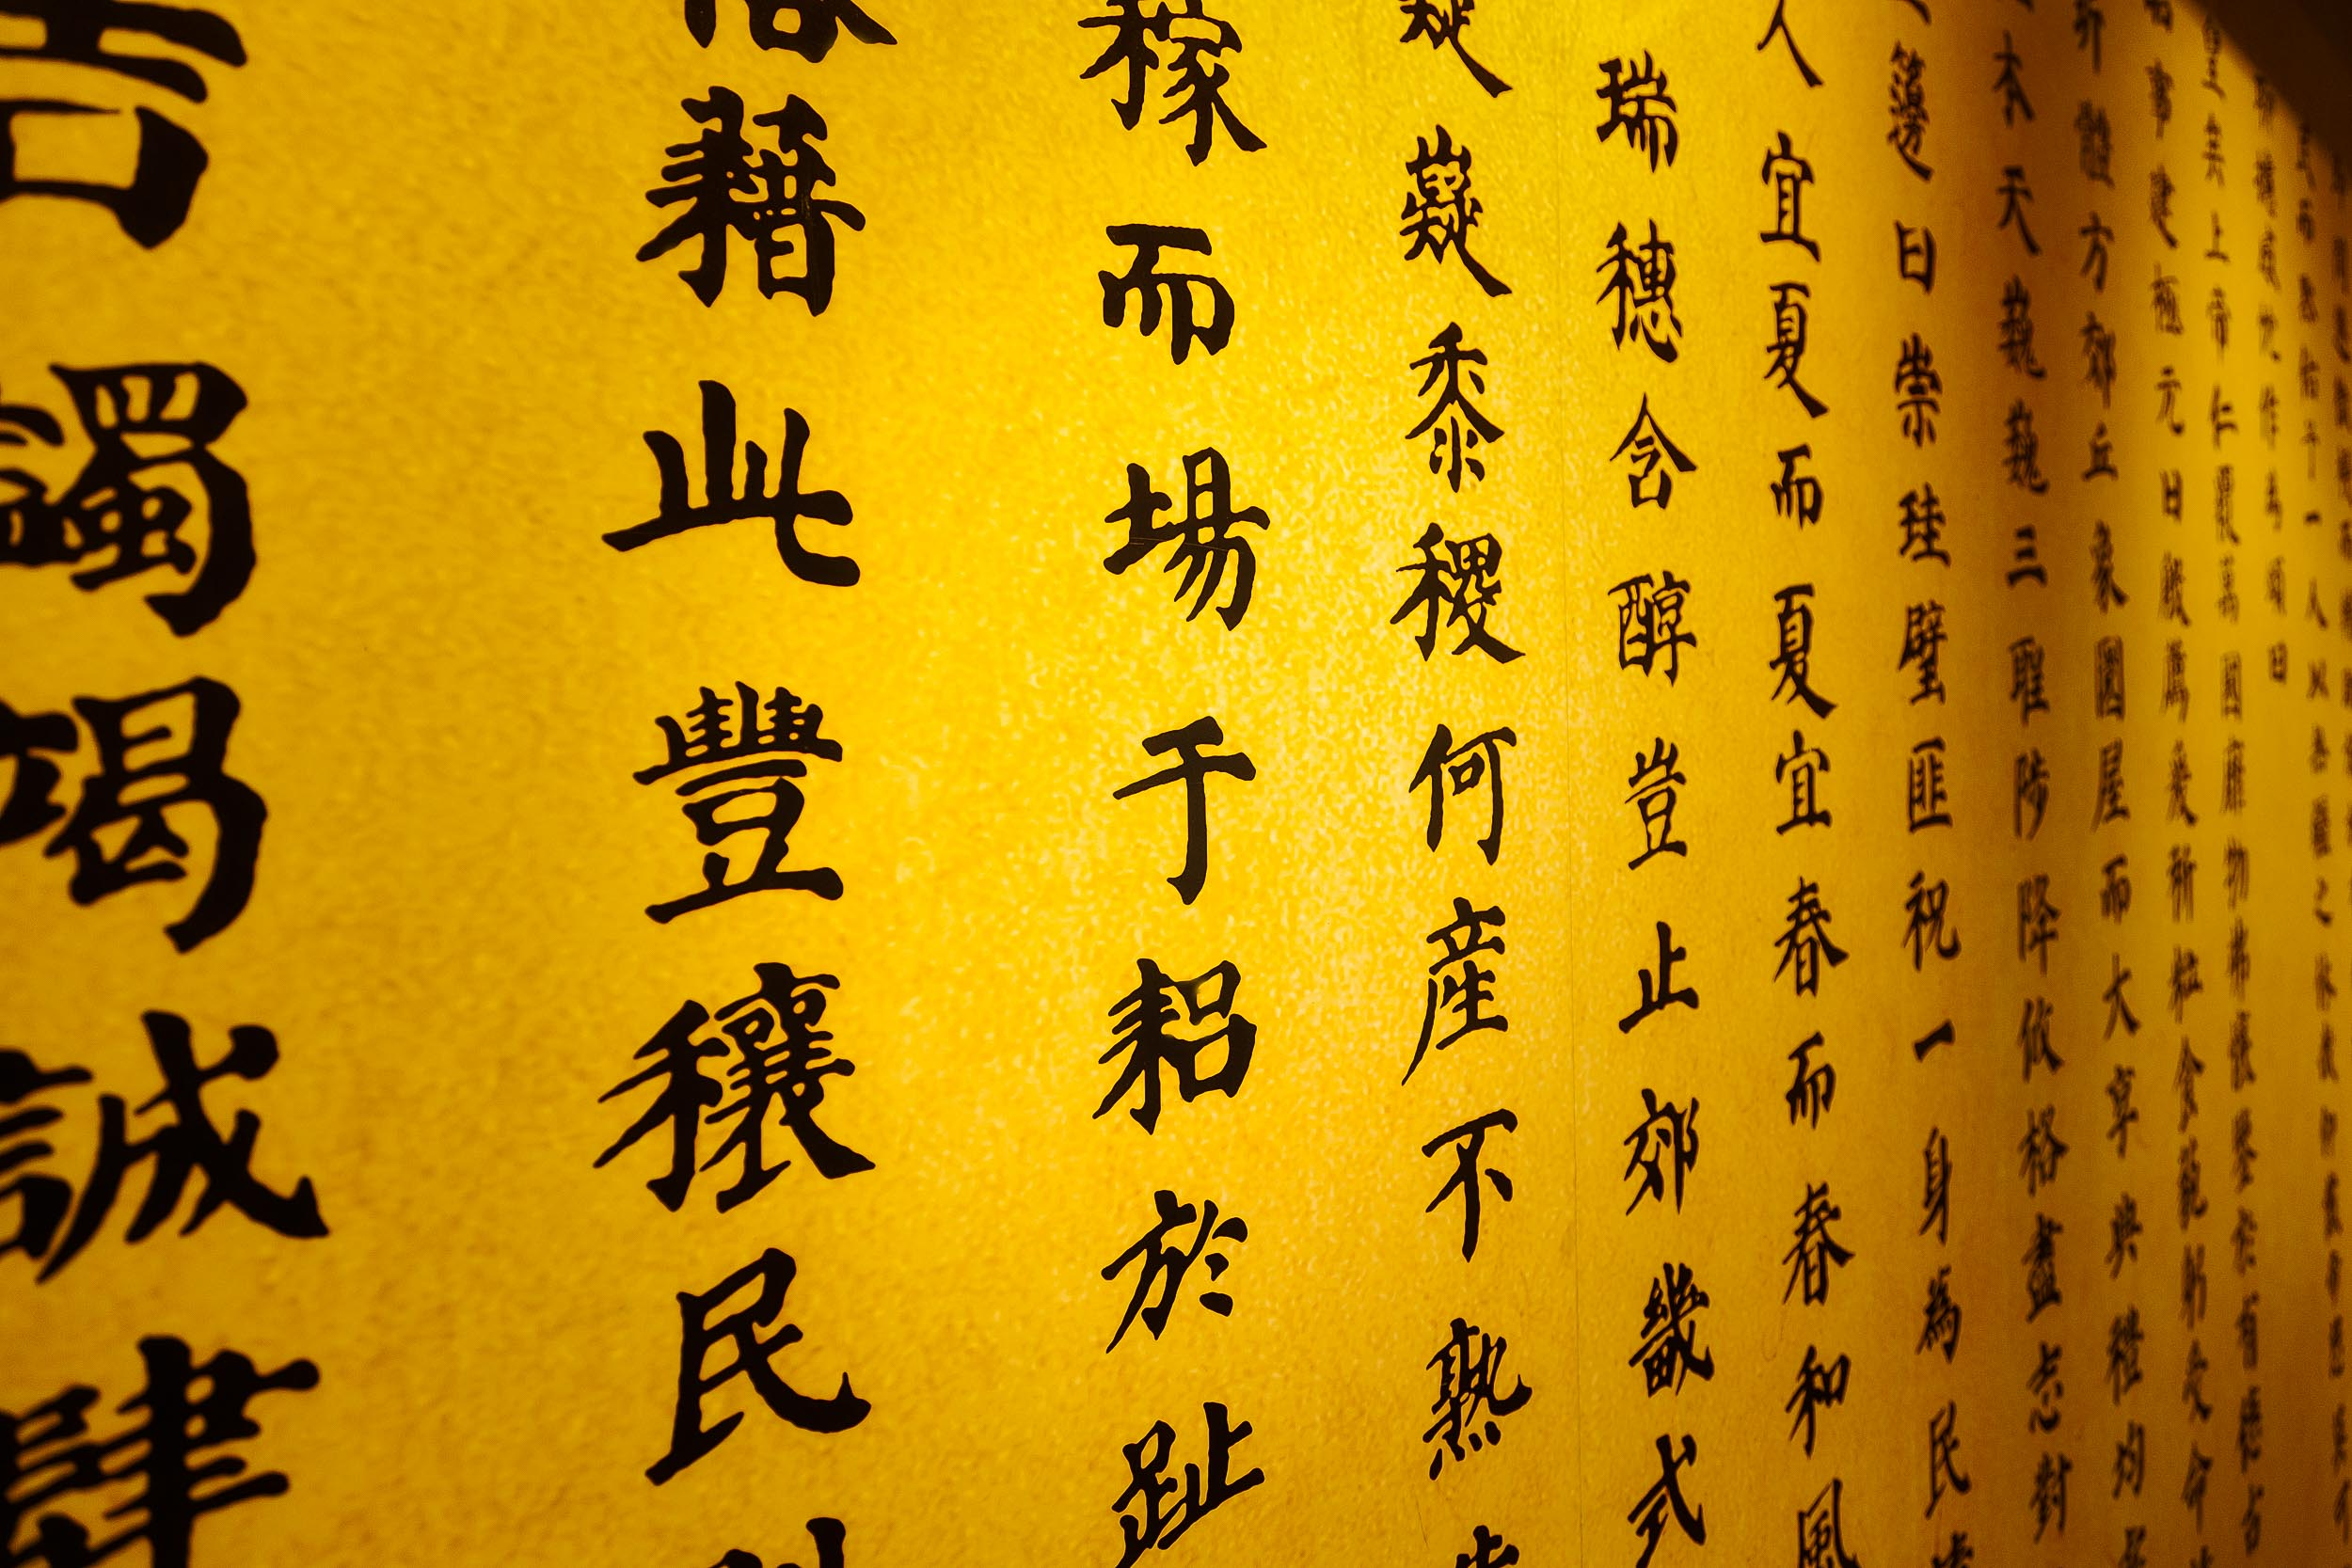 A large panel of  Chinese writing  on display at the  Temple Of Heaven  in  Beijing, China .